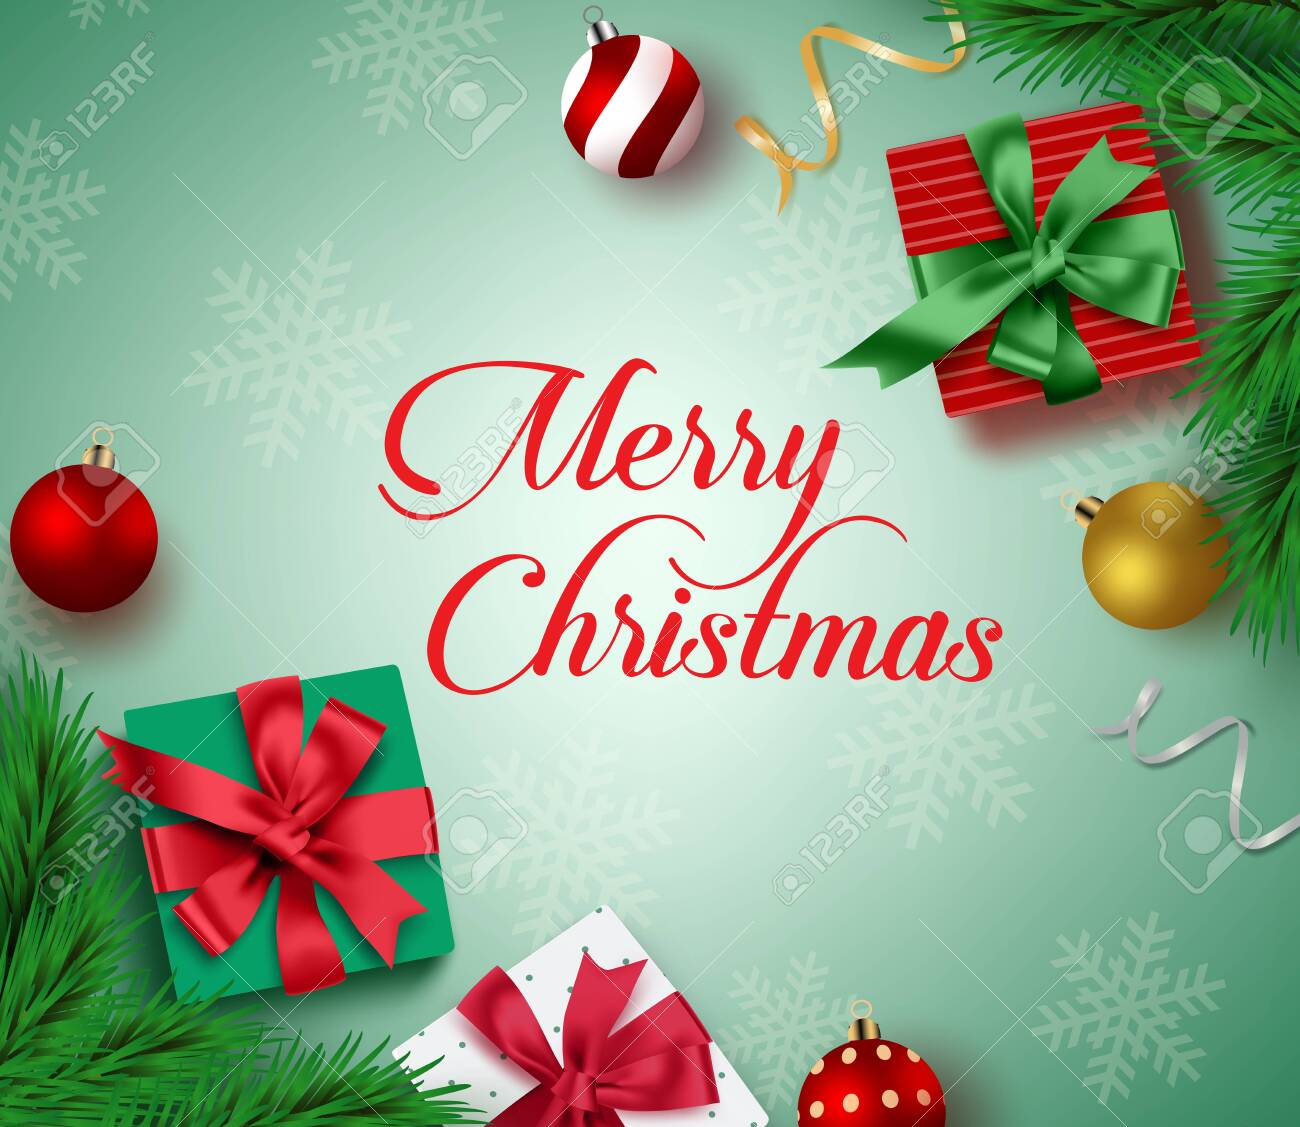 Christmas Greeting Card Vector Background Merry Christmas Typography Royalty Free Cliparts Vectors And Stock Illustration Image 131605748